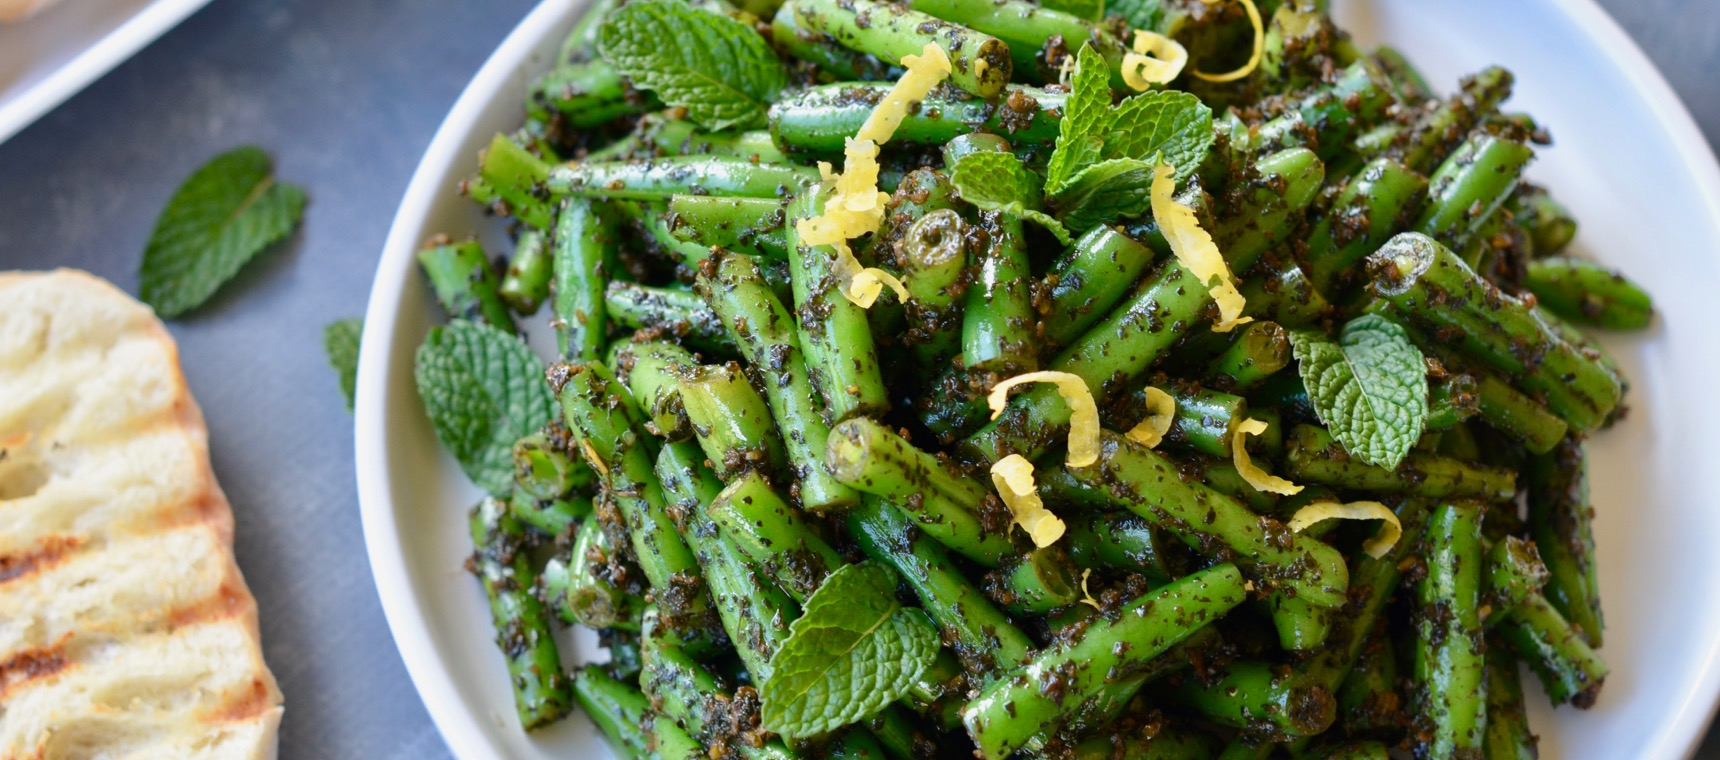 Warm Lemon and Mint Green Bean Salad